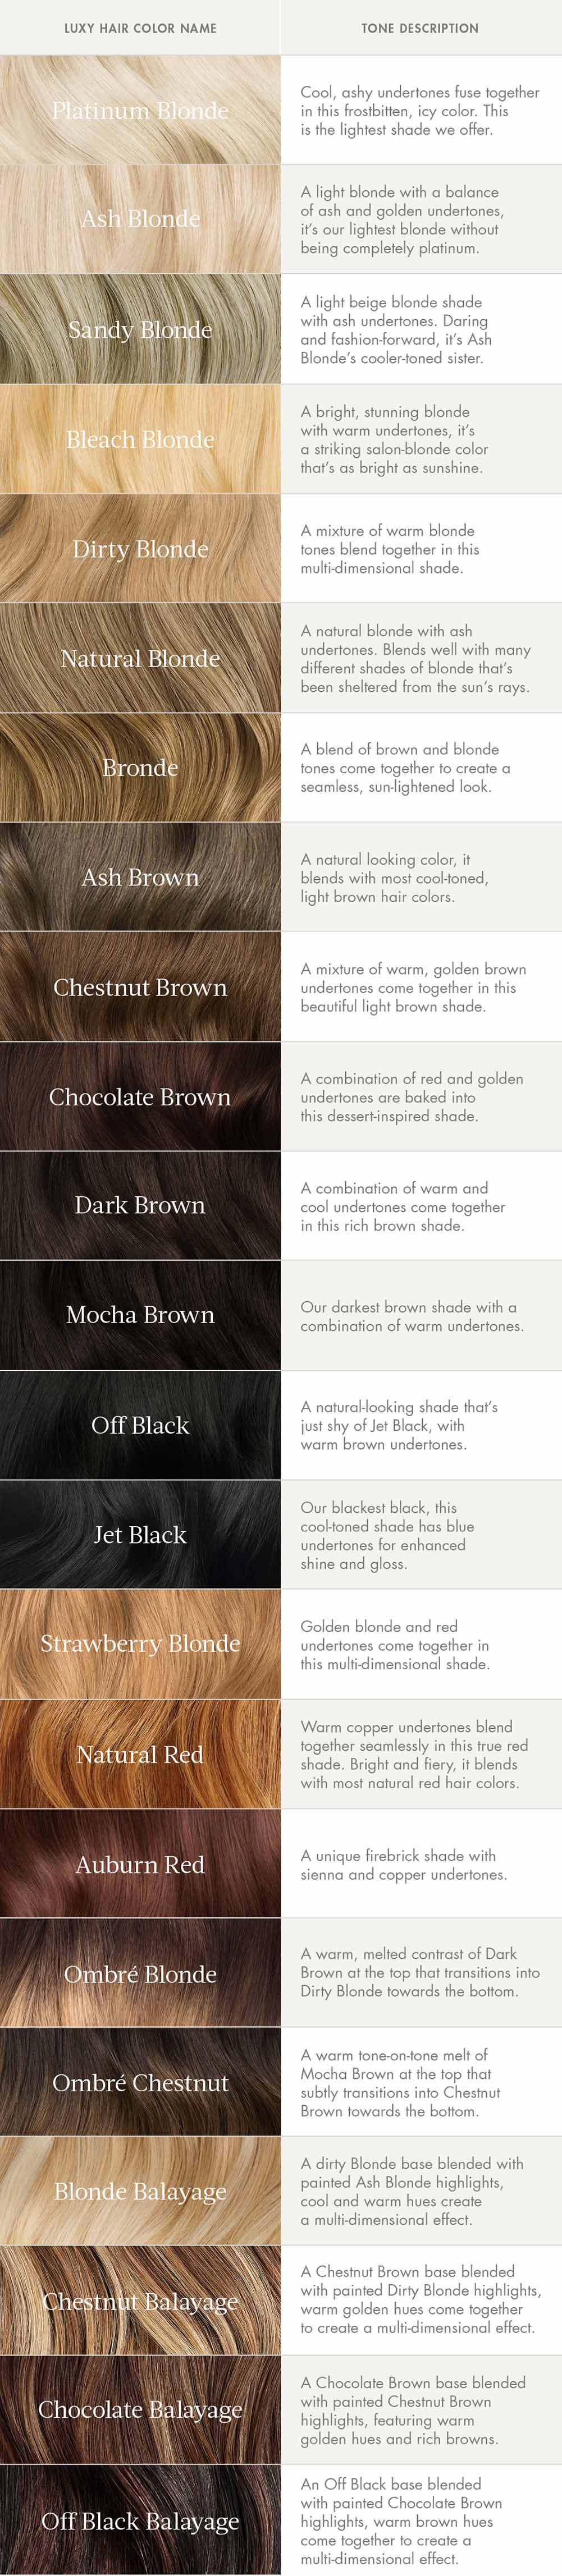 luxy hair color guide